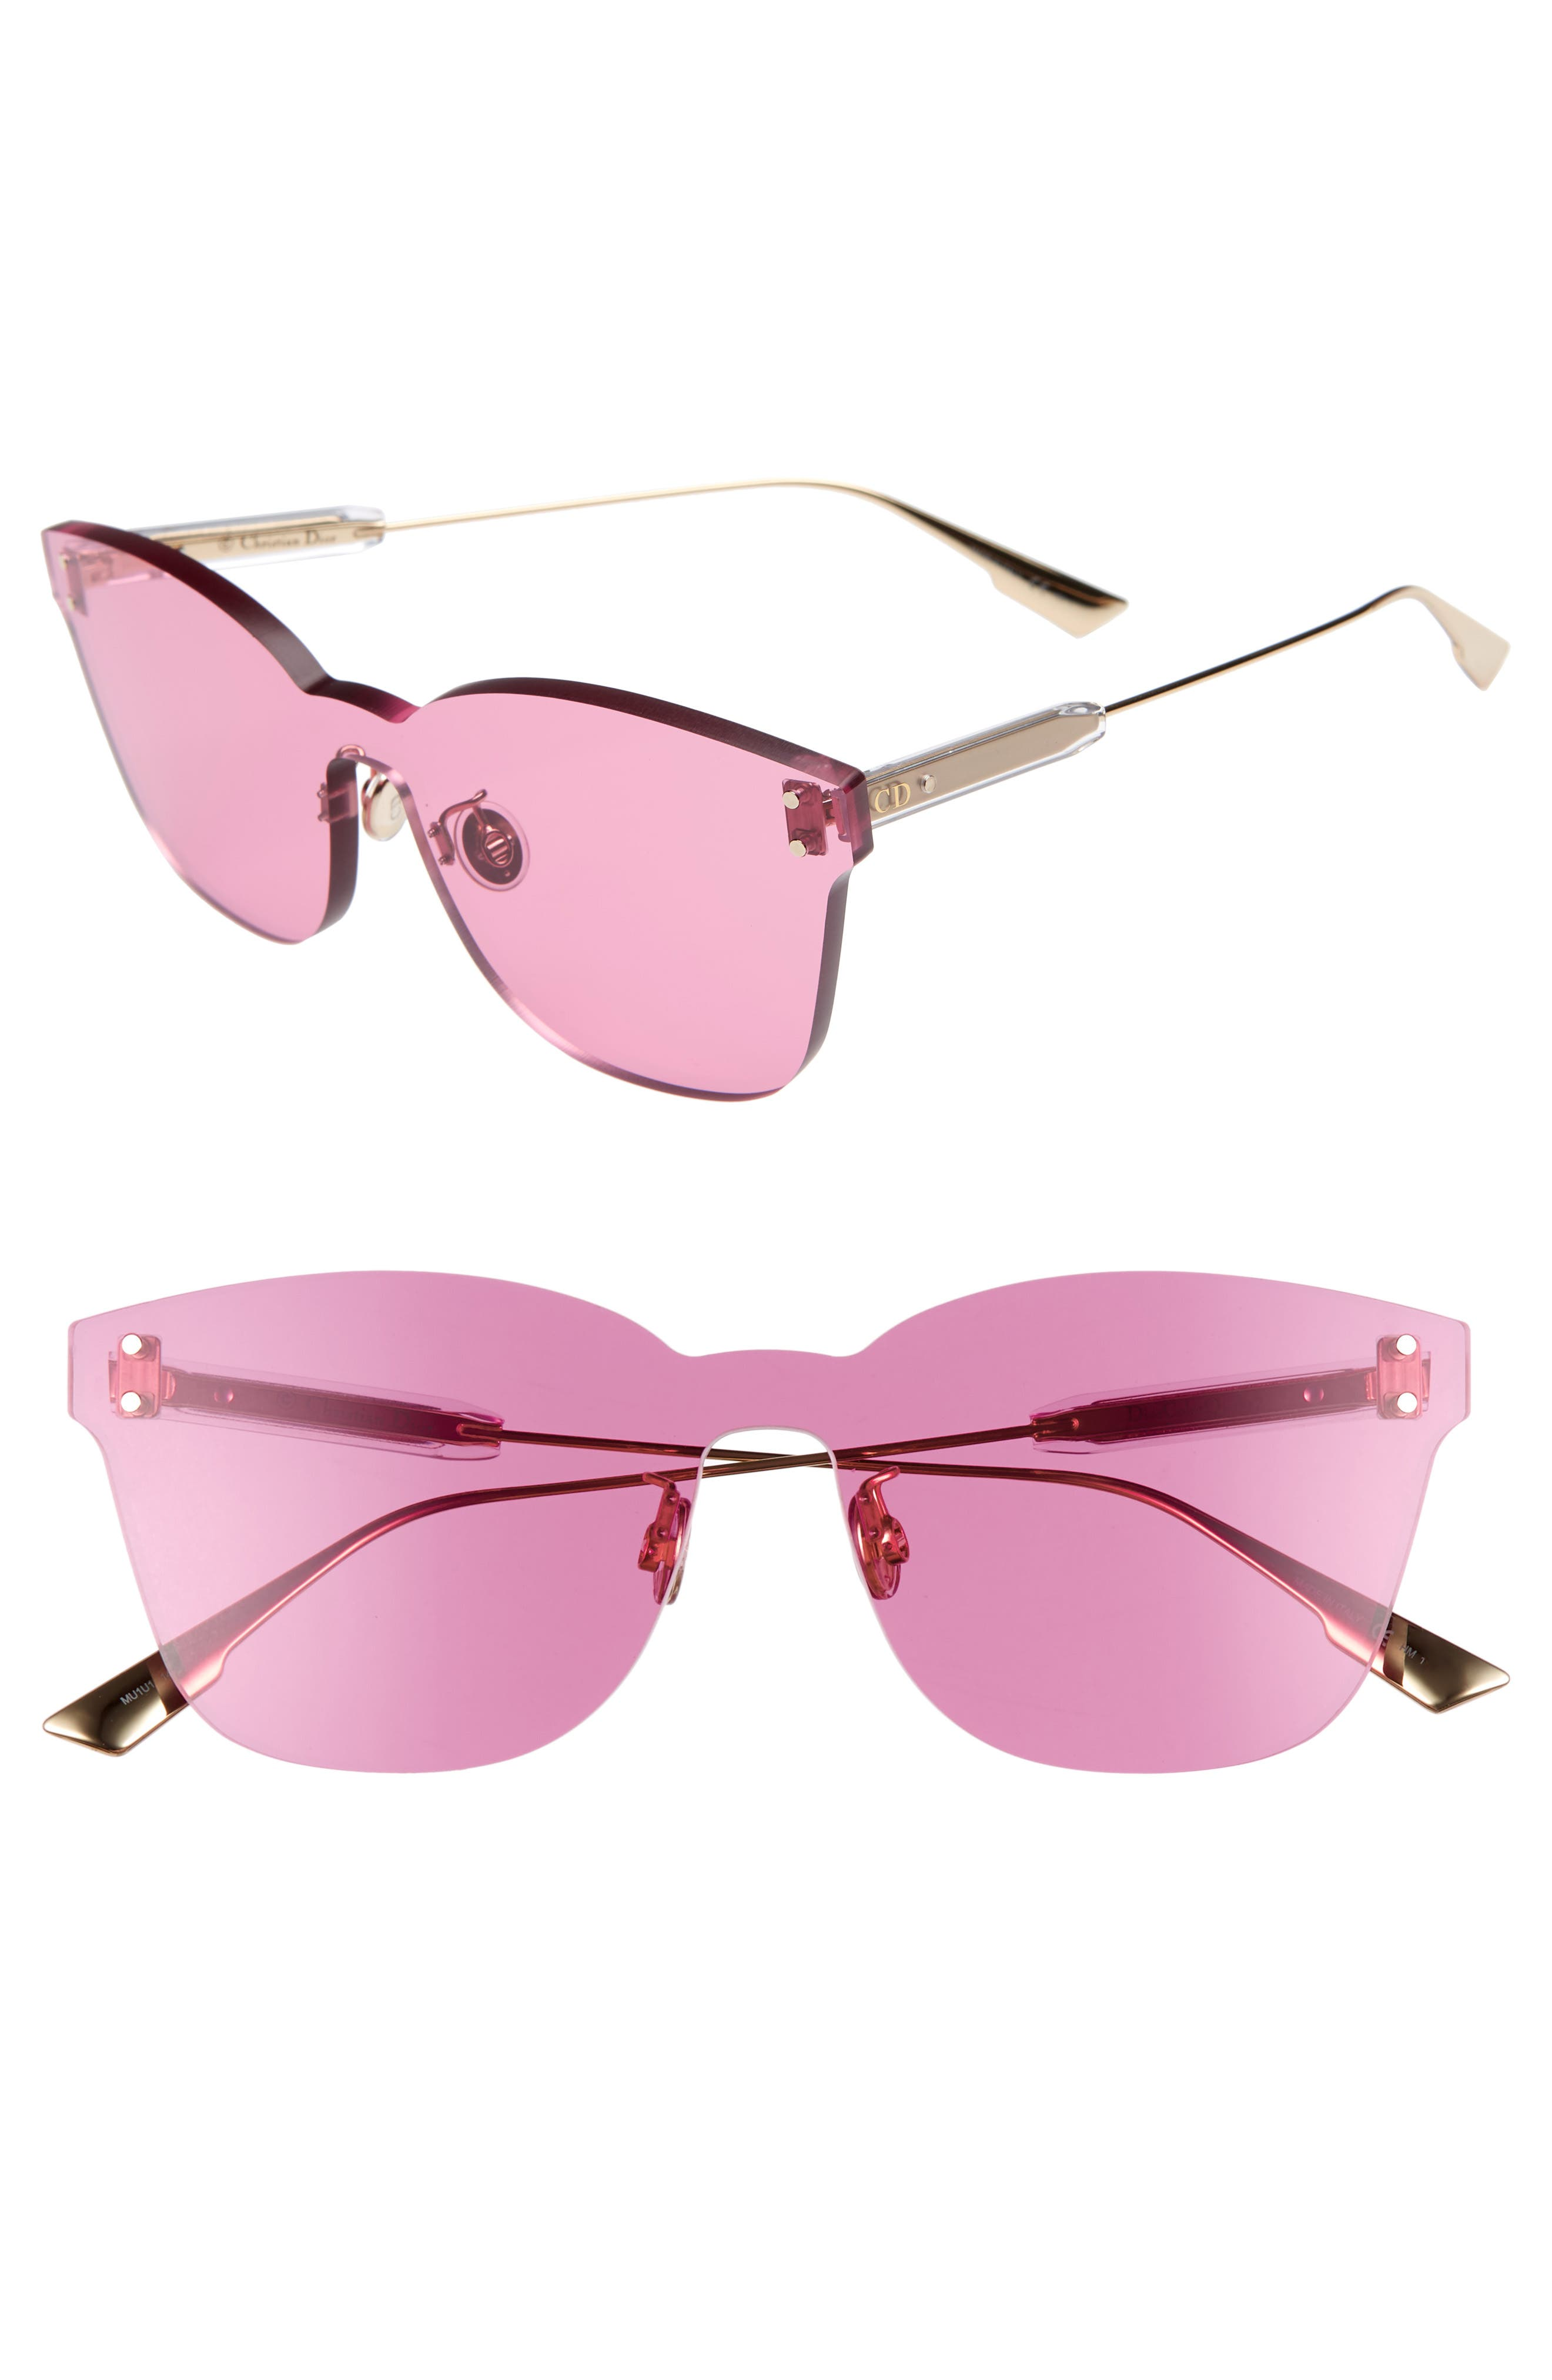 Christian Dior Quake2 135Mm Rimless Shield Sunglasses - Fuchsia